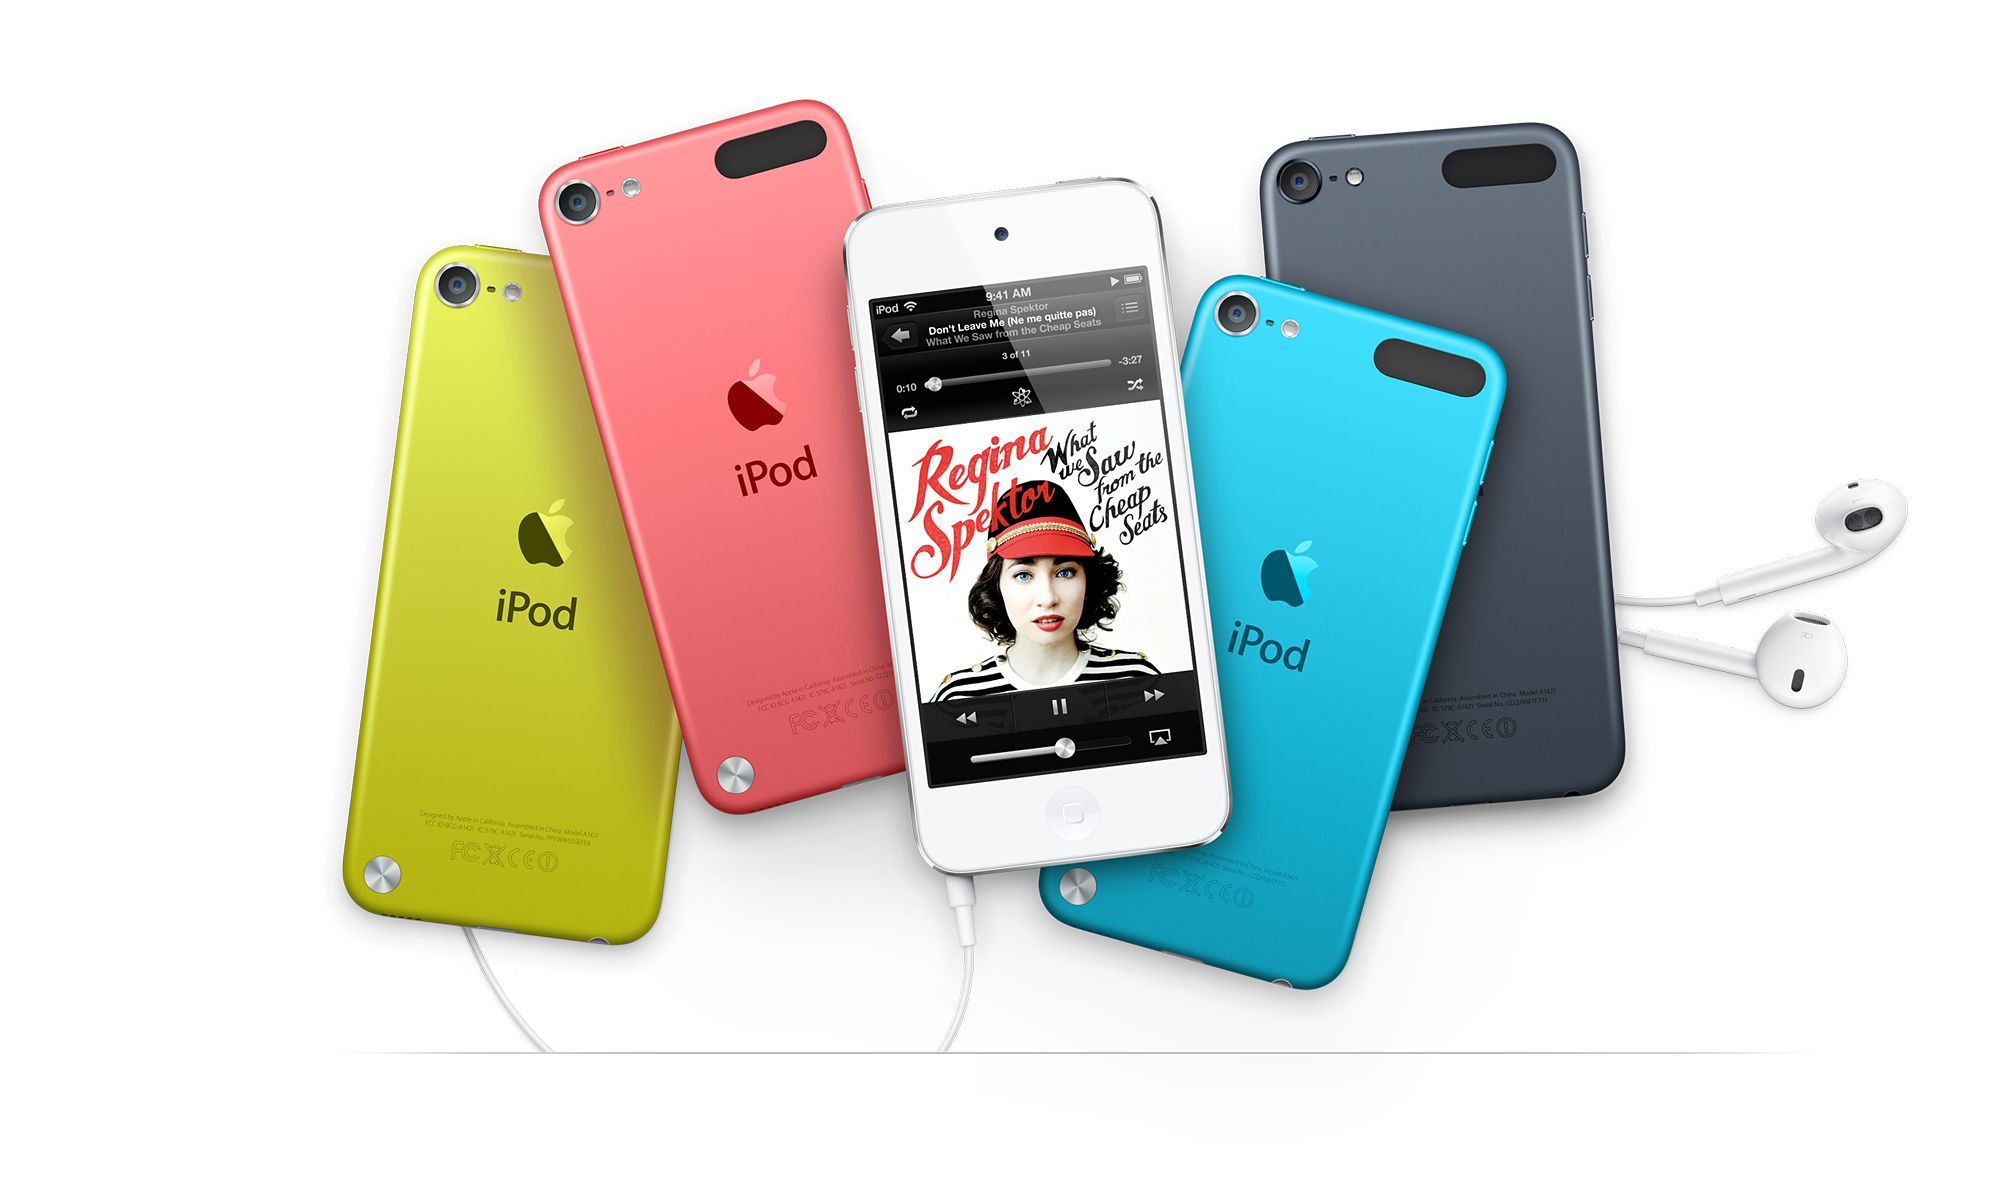 Fifth-generation iPod touch